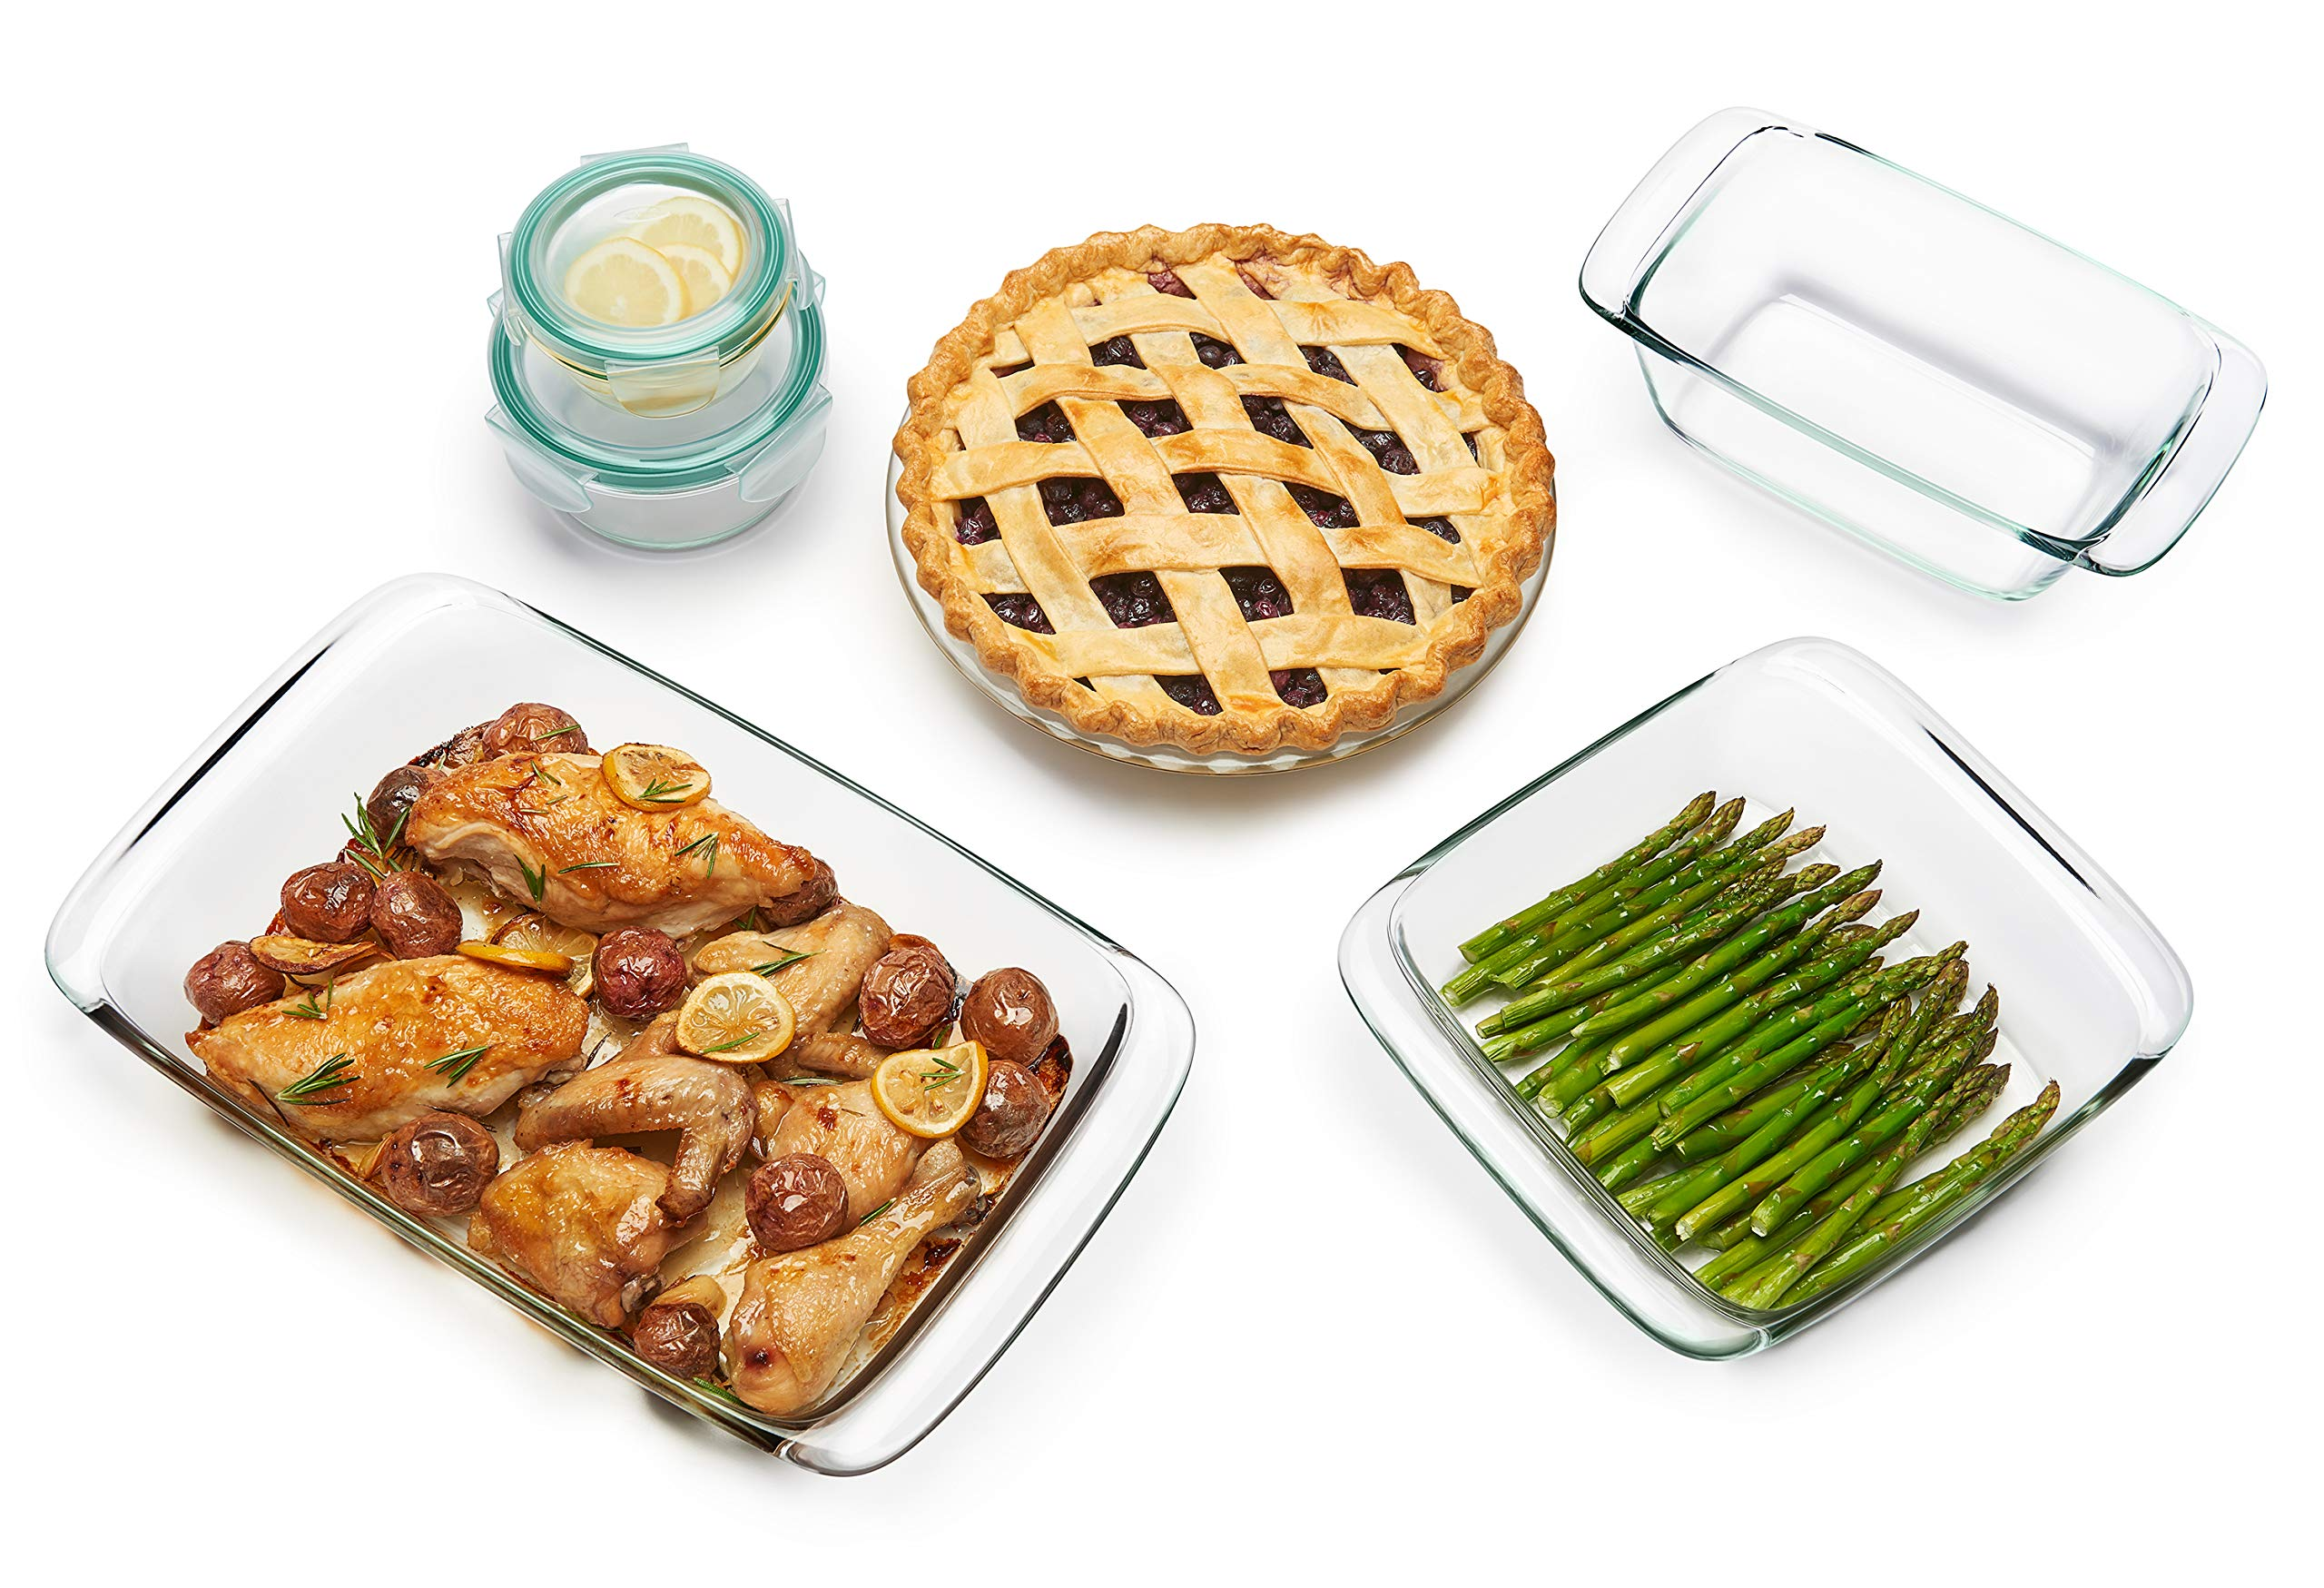 OXO Good Grips 8 Piece Freezer-to-Oven Safe Glass Bake, Serve and Store Set by OXO (Image #3)